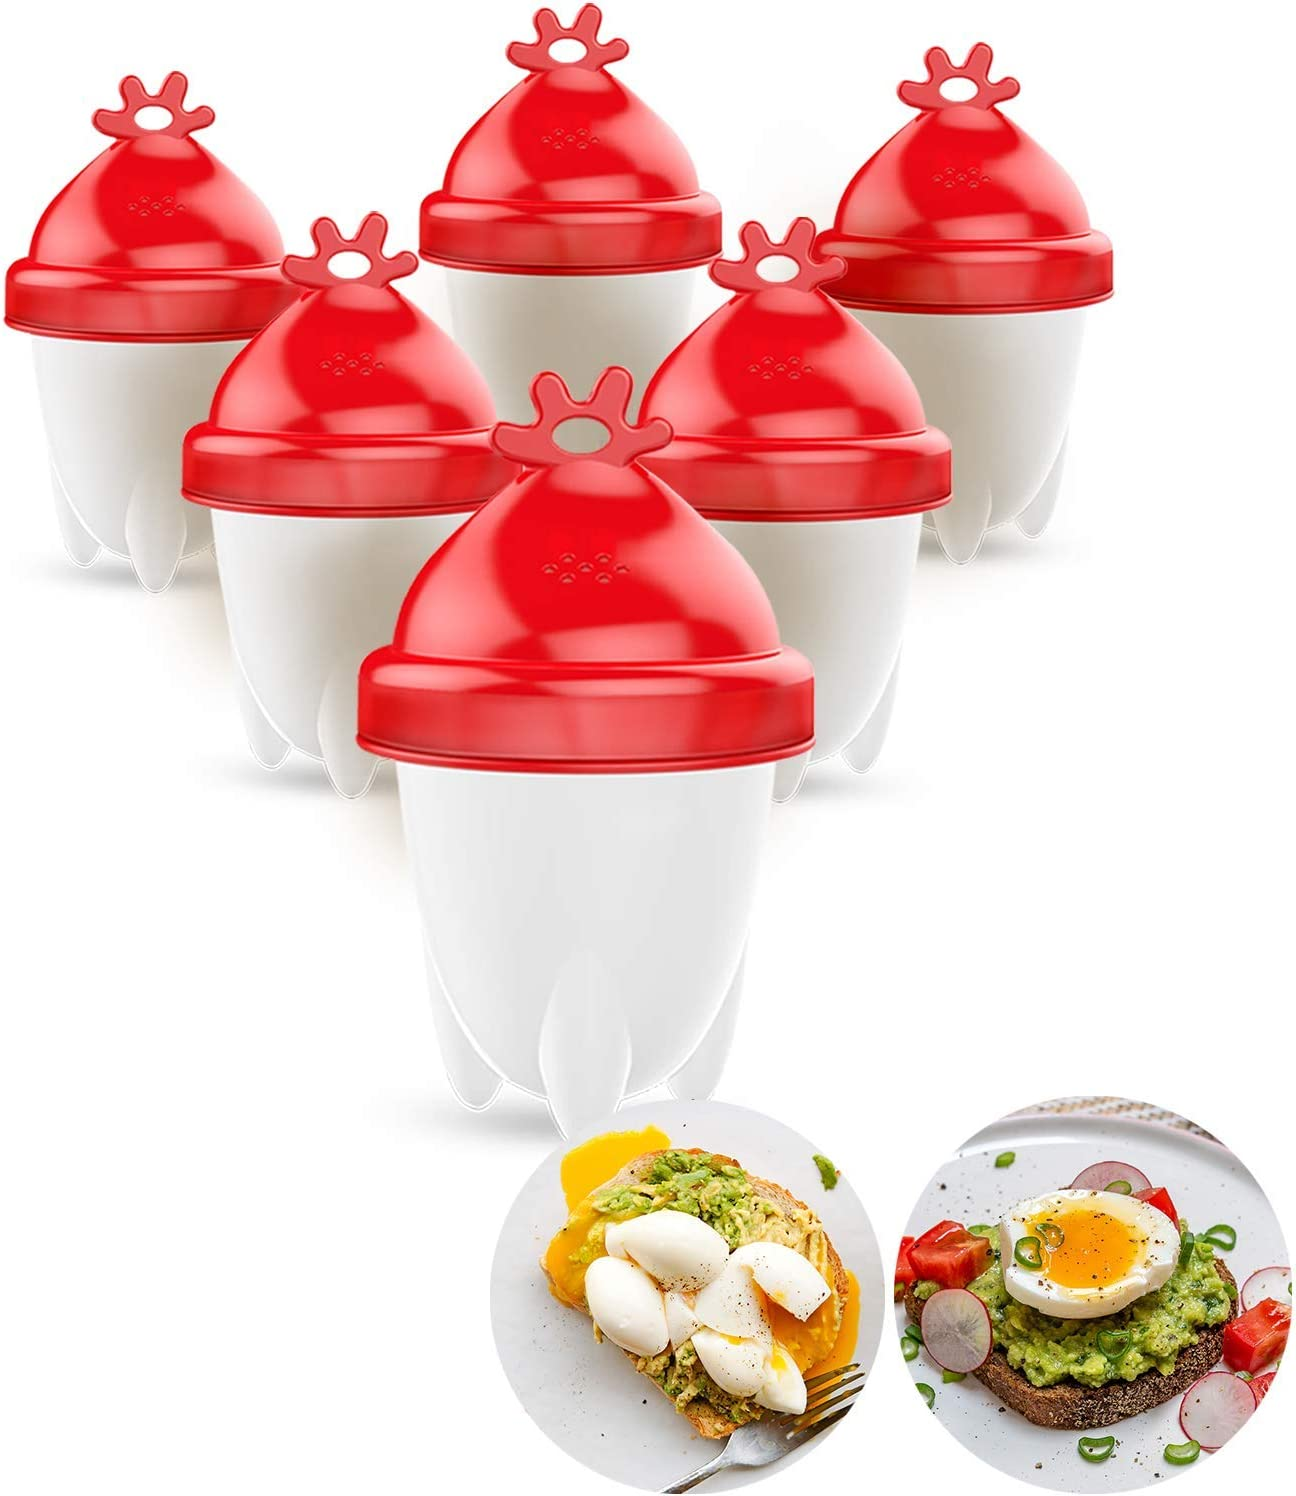 BPA-free hard boiled egg cooker Aribest easy egg cooker FDA non-stick silicone 6 pieces silicone egg boil egg maker new version!